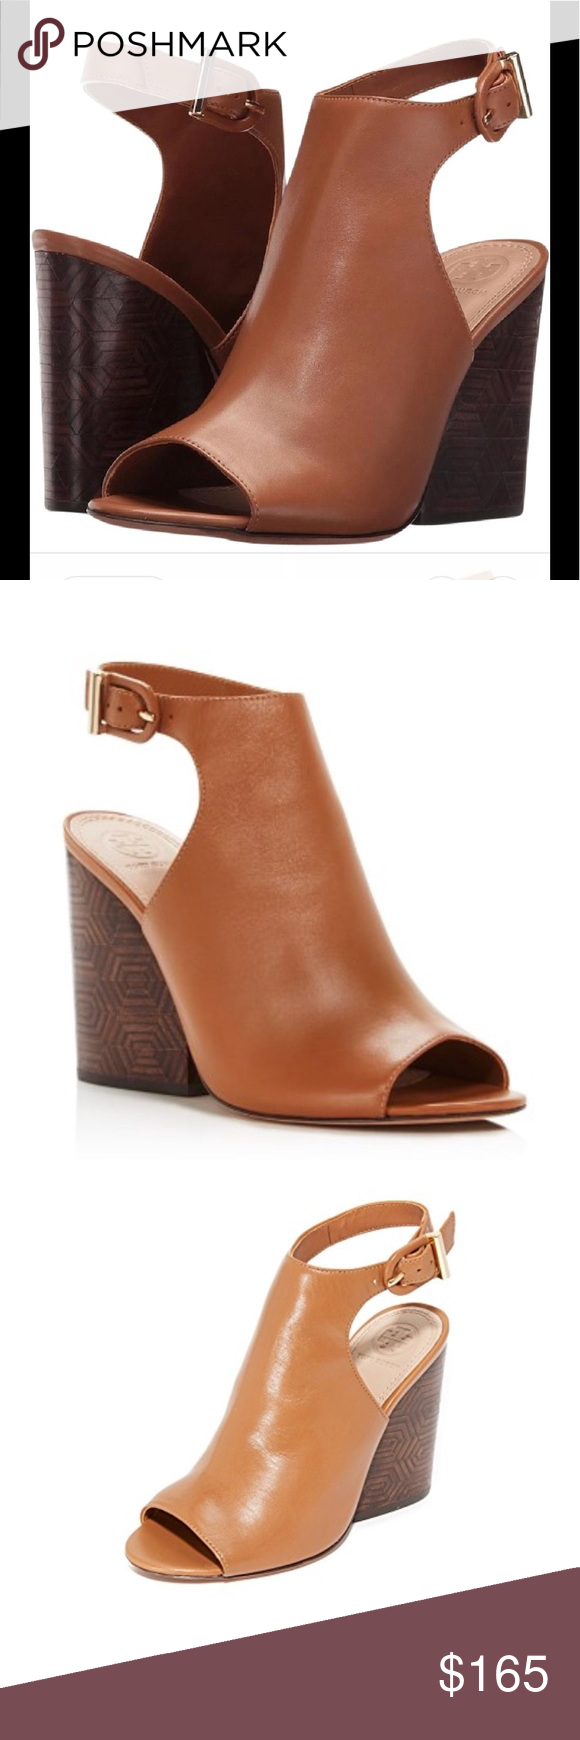 e59e768cca79 Tory Burch open toe bootie New in box Tory Burch Open toe Grove 100mm bootie  royal